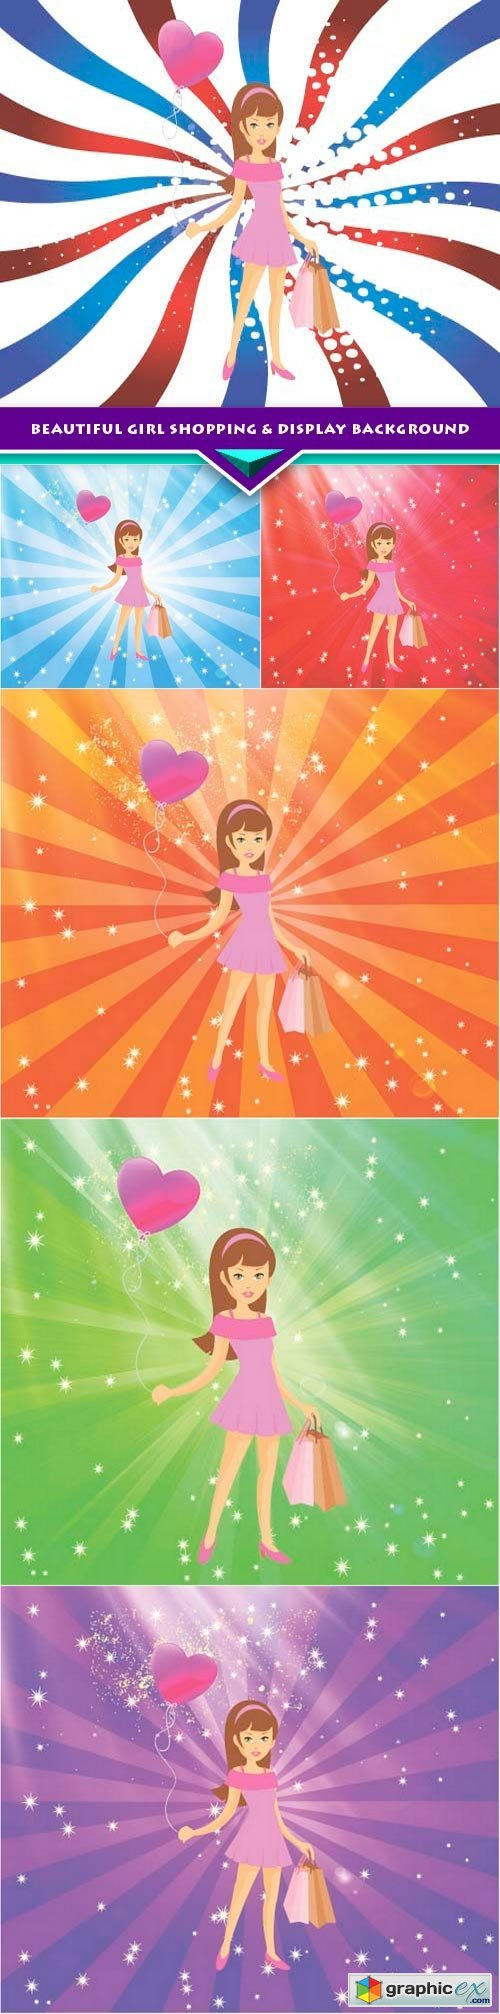 Beautiful Girl Shopping & Display Background 6x EPS